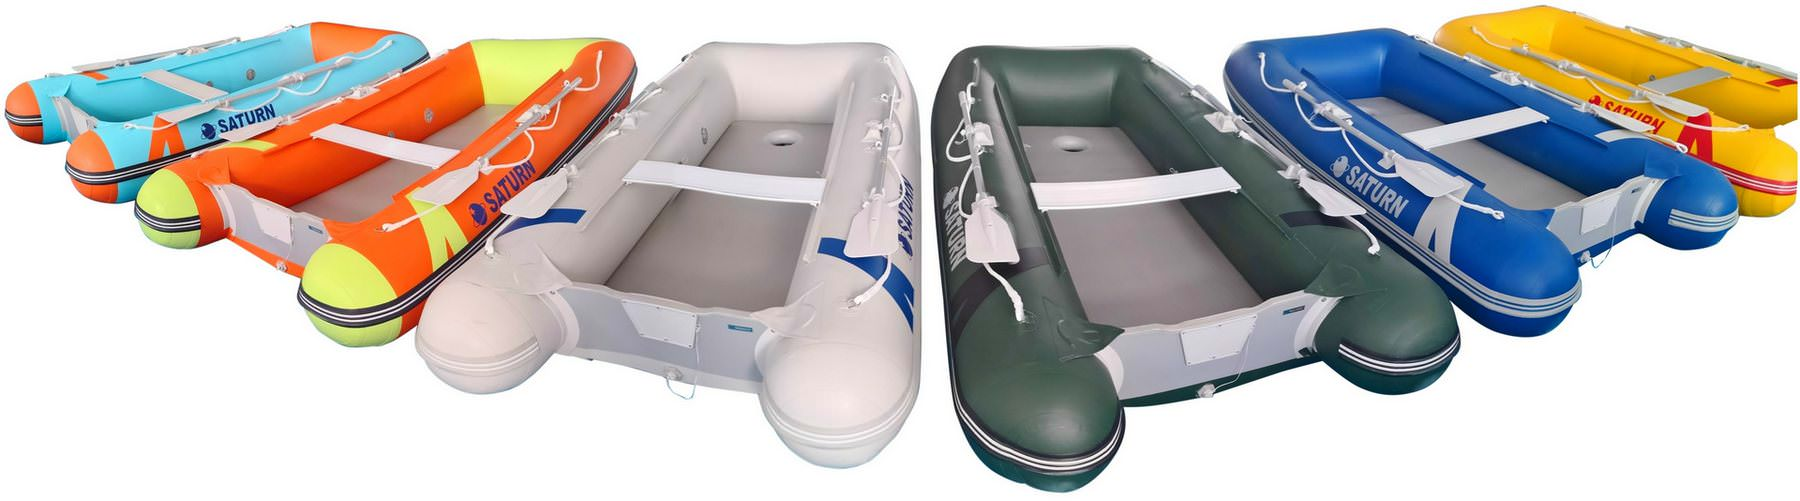 Saturn Square Boats Boxy inflatable boats on sale